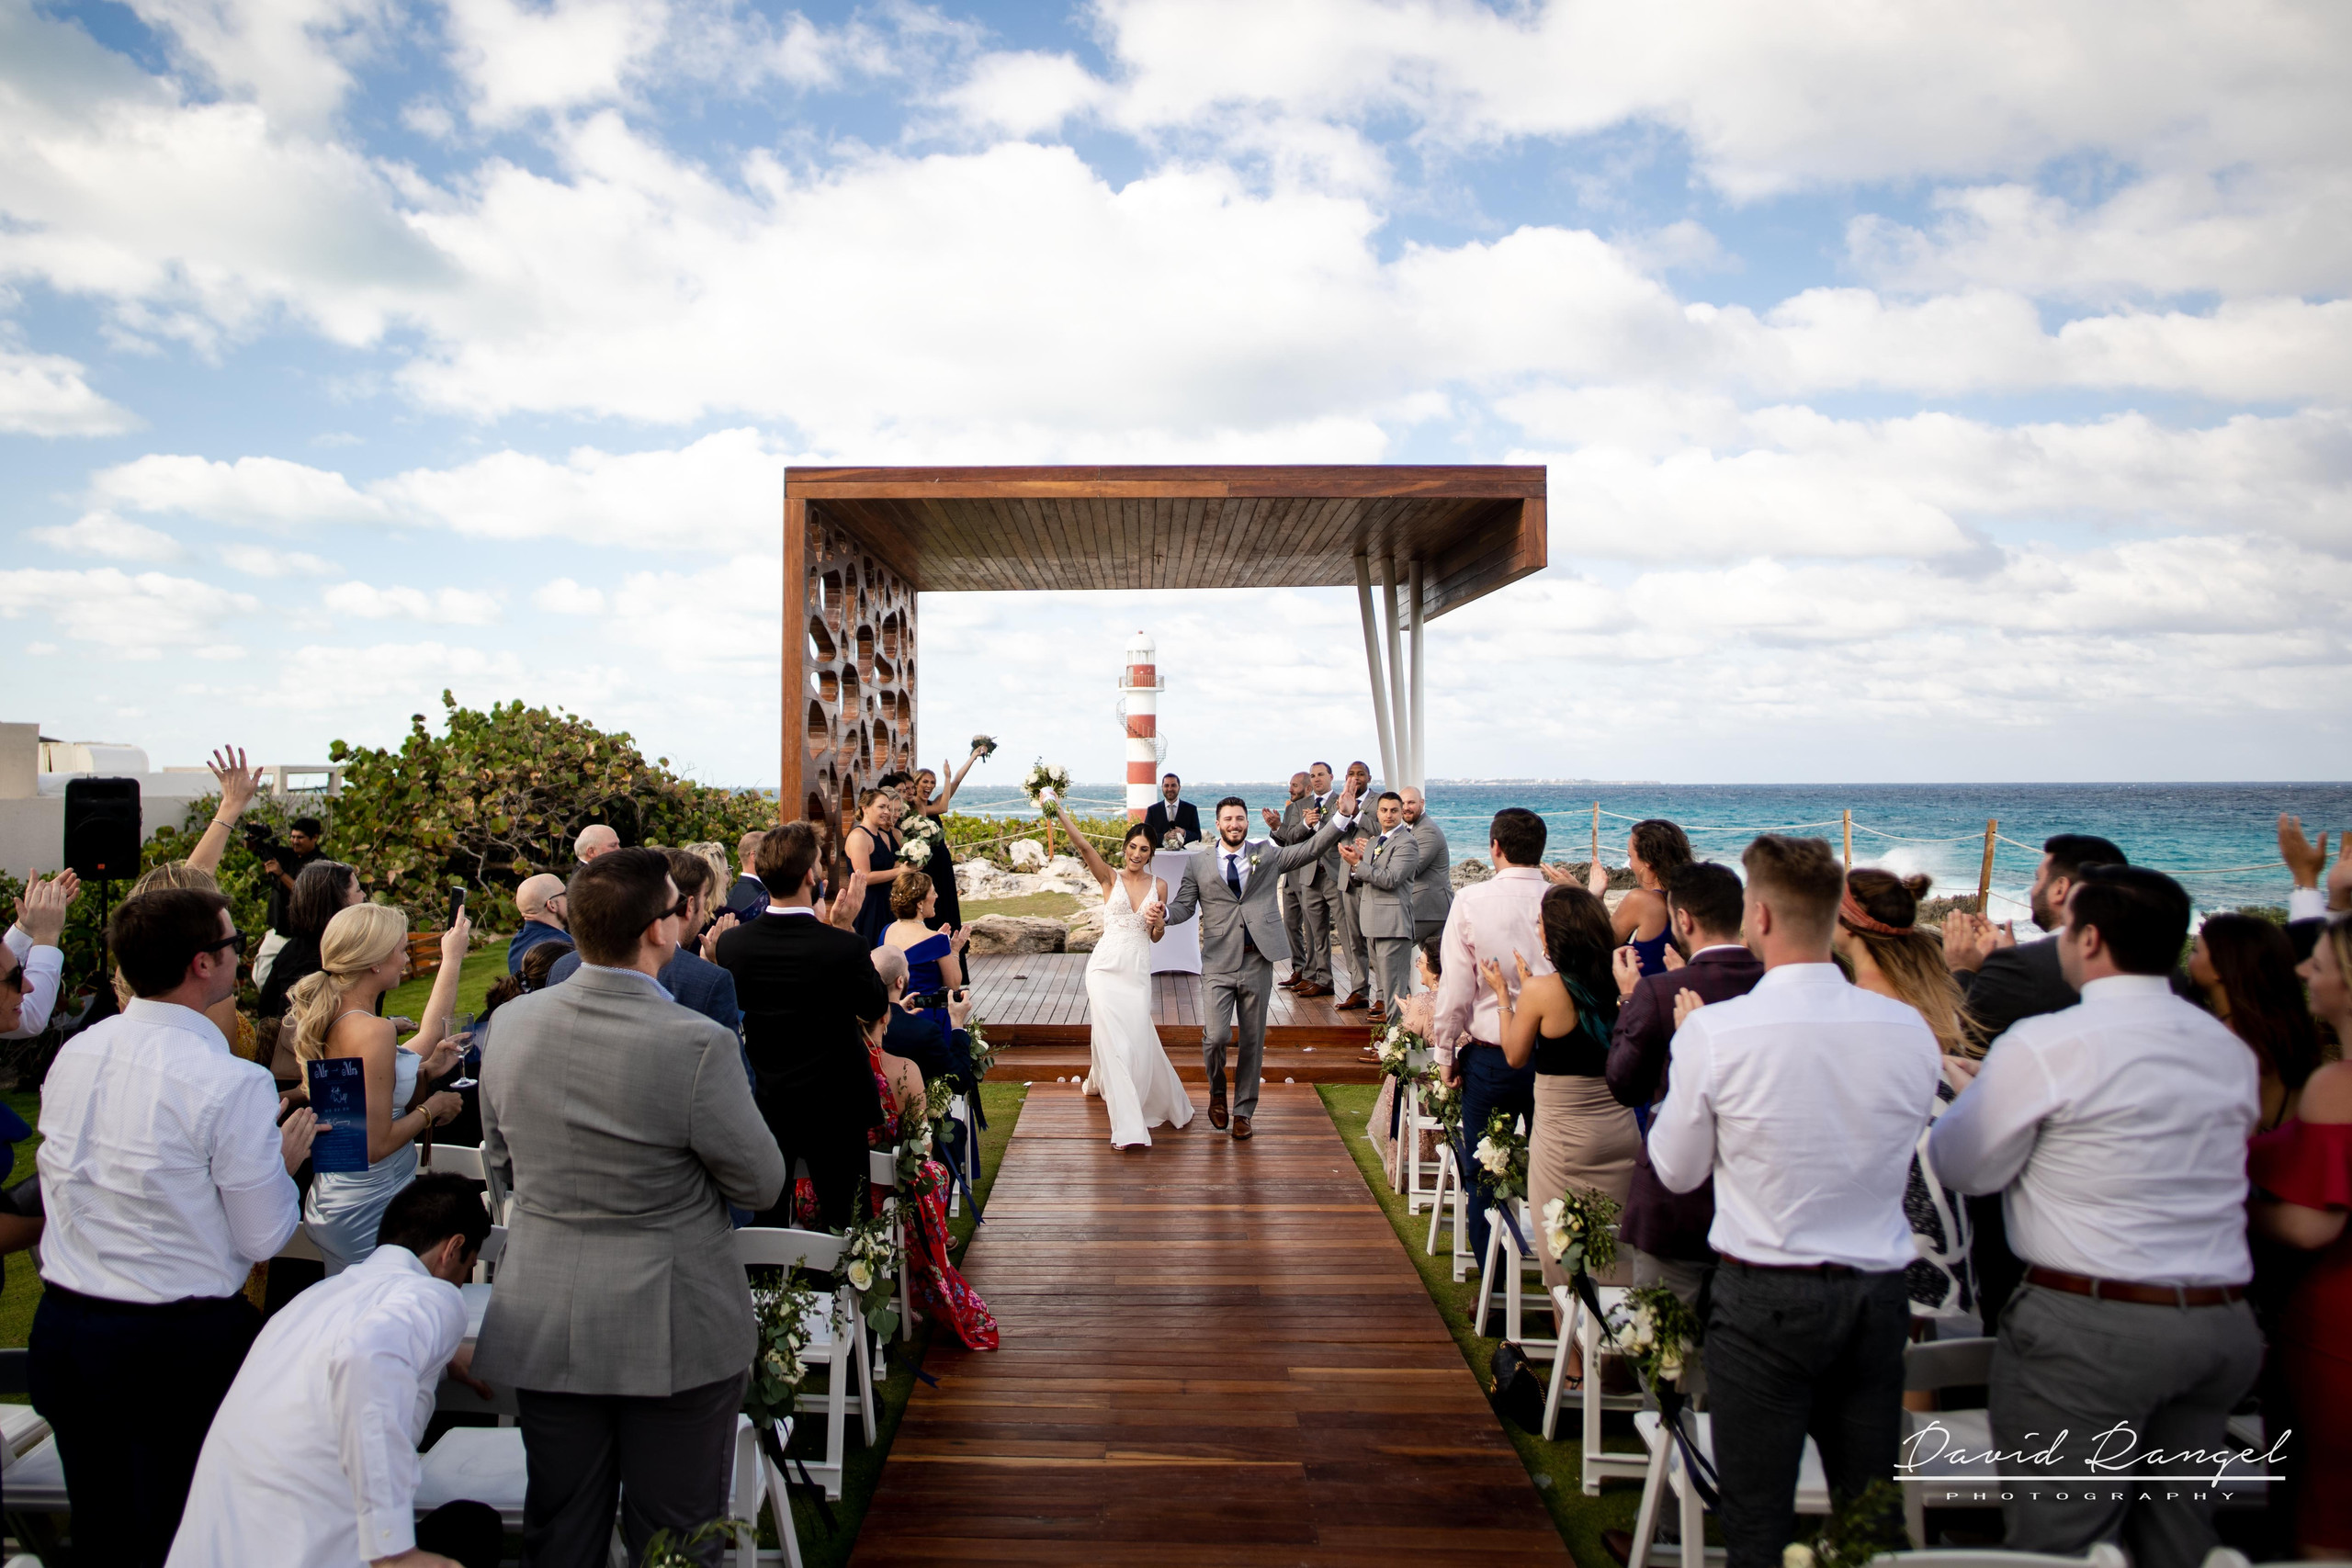 walk+aisle+bride+groom+ceremony+happy+lighthouse+gazebo+wedding+ceremony+photo